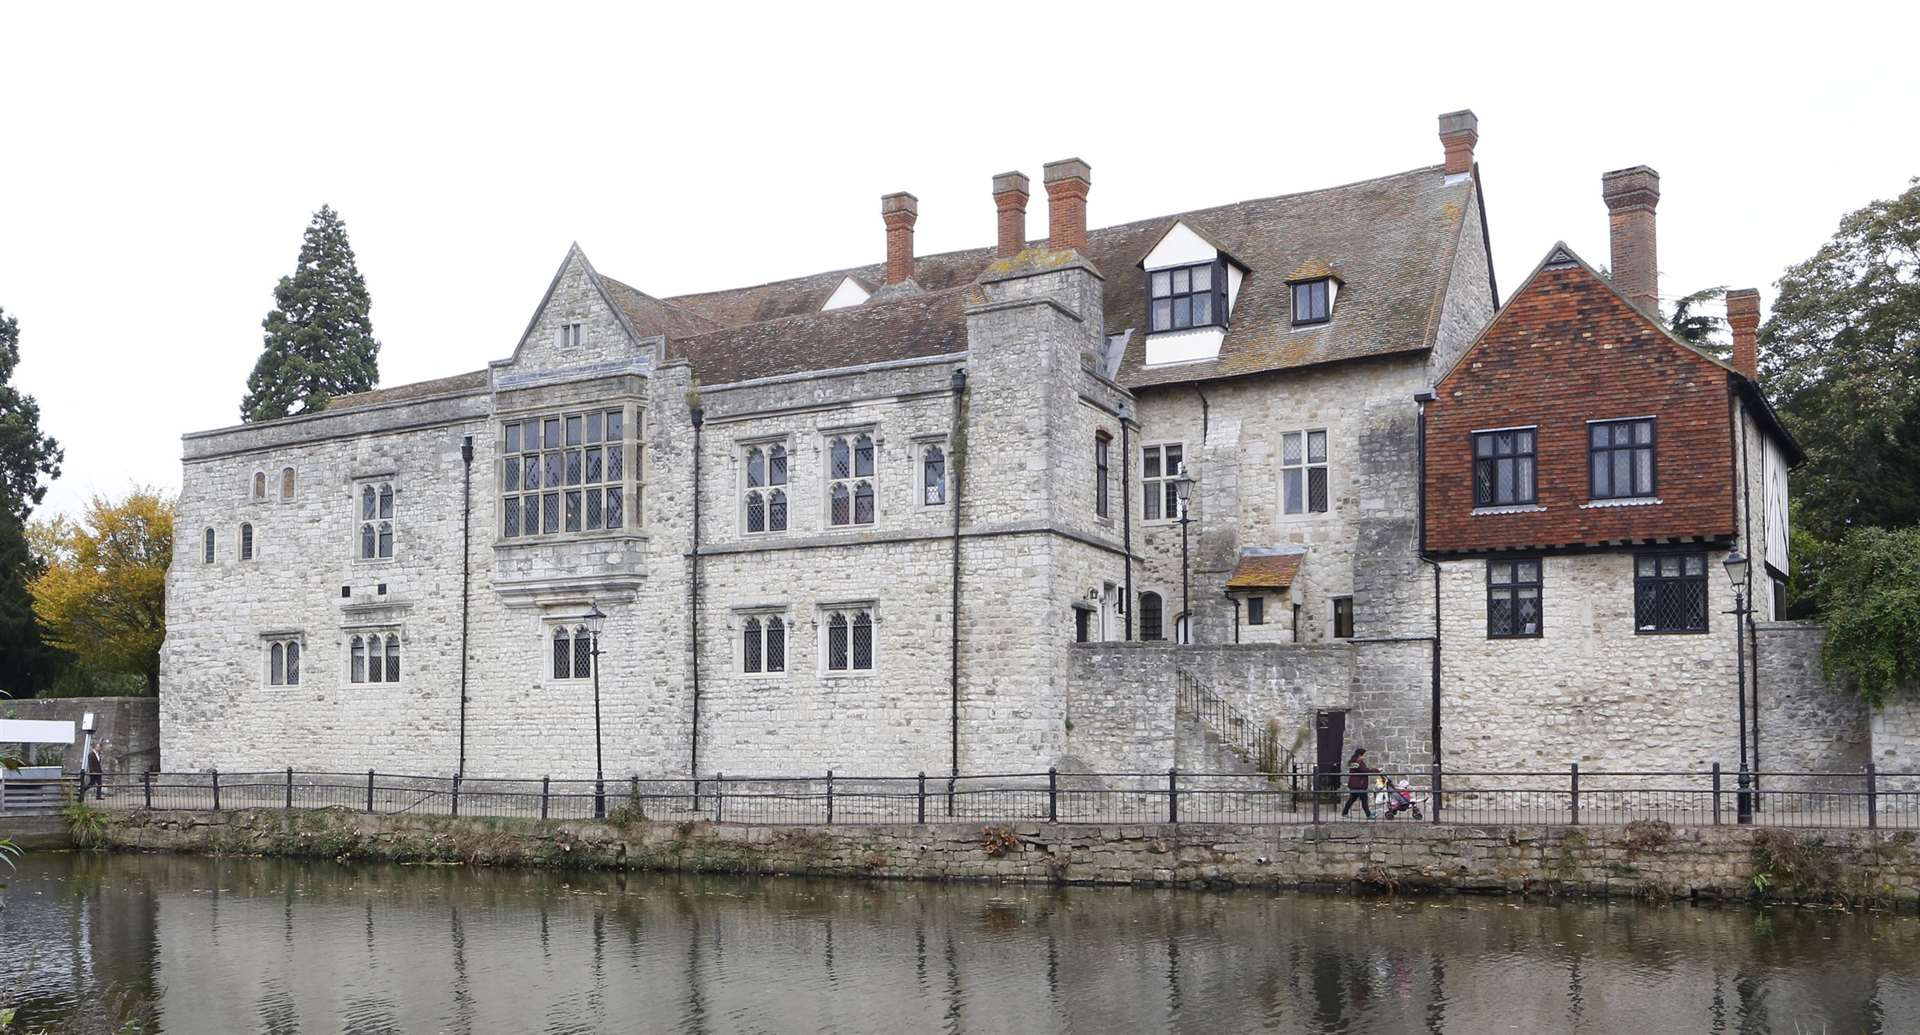 Archbishop's Palace in Maidstone.Picture: Andy Jones